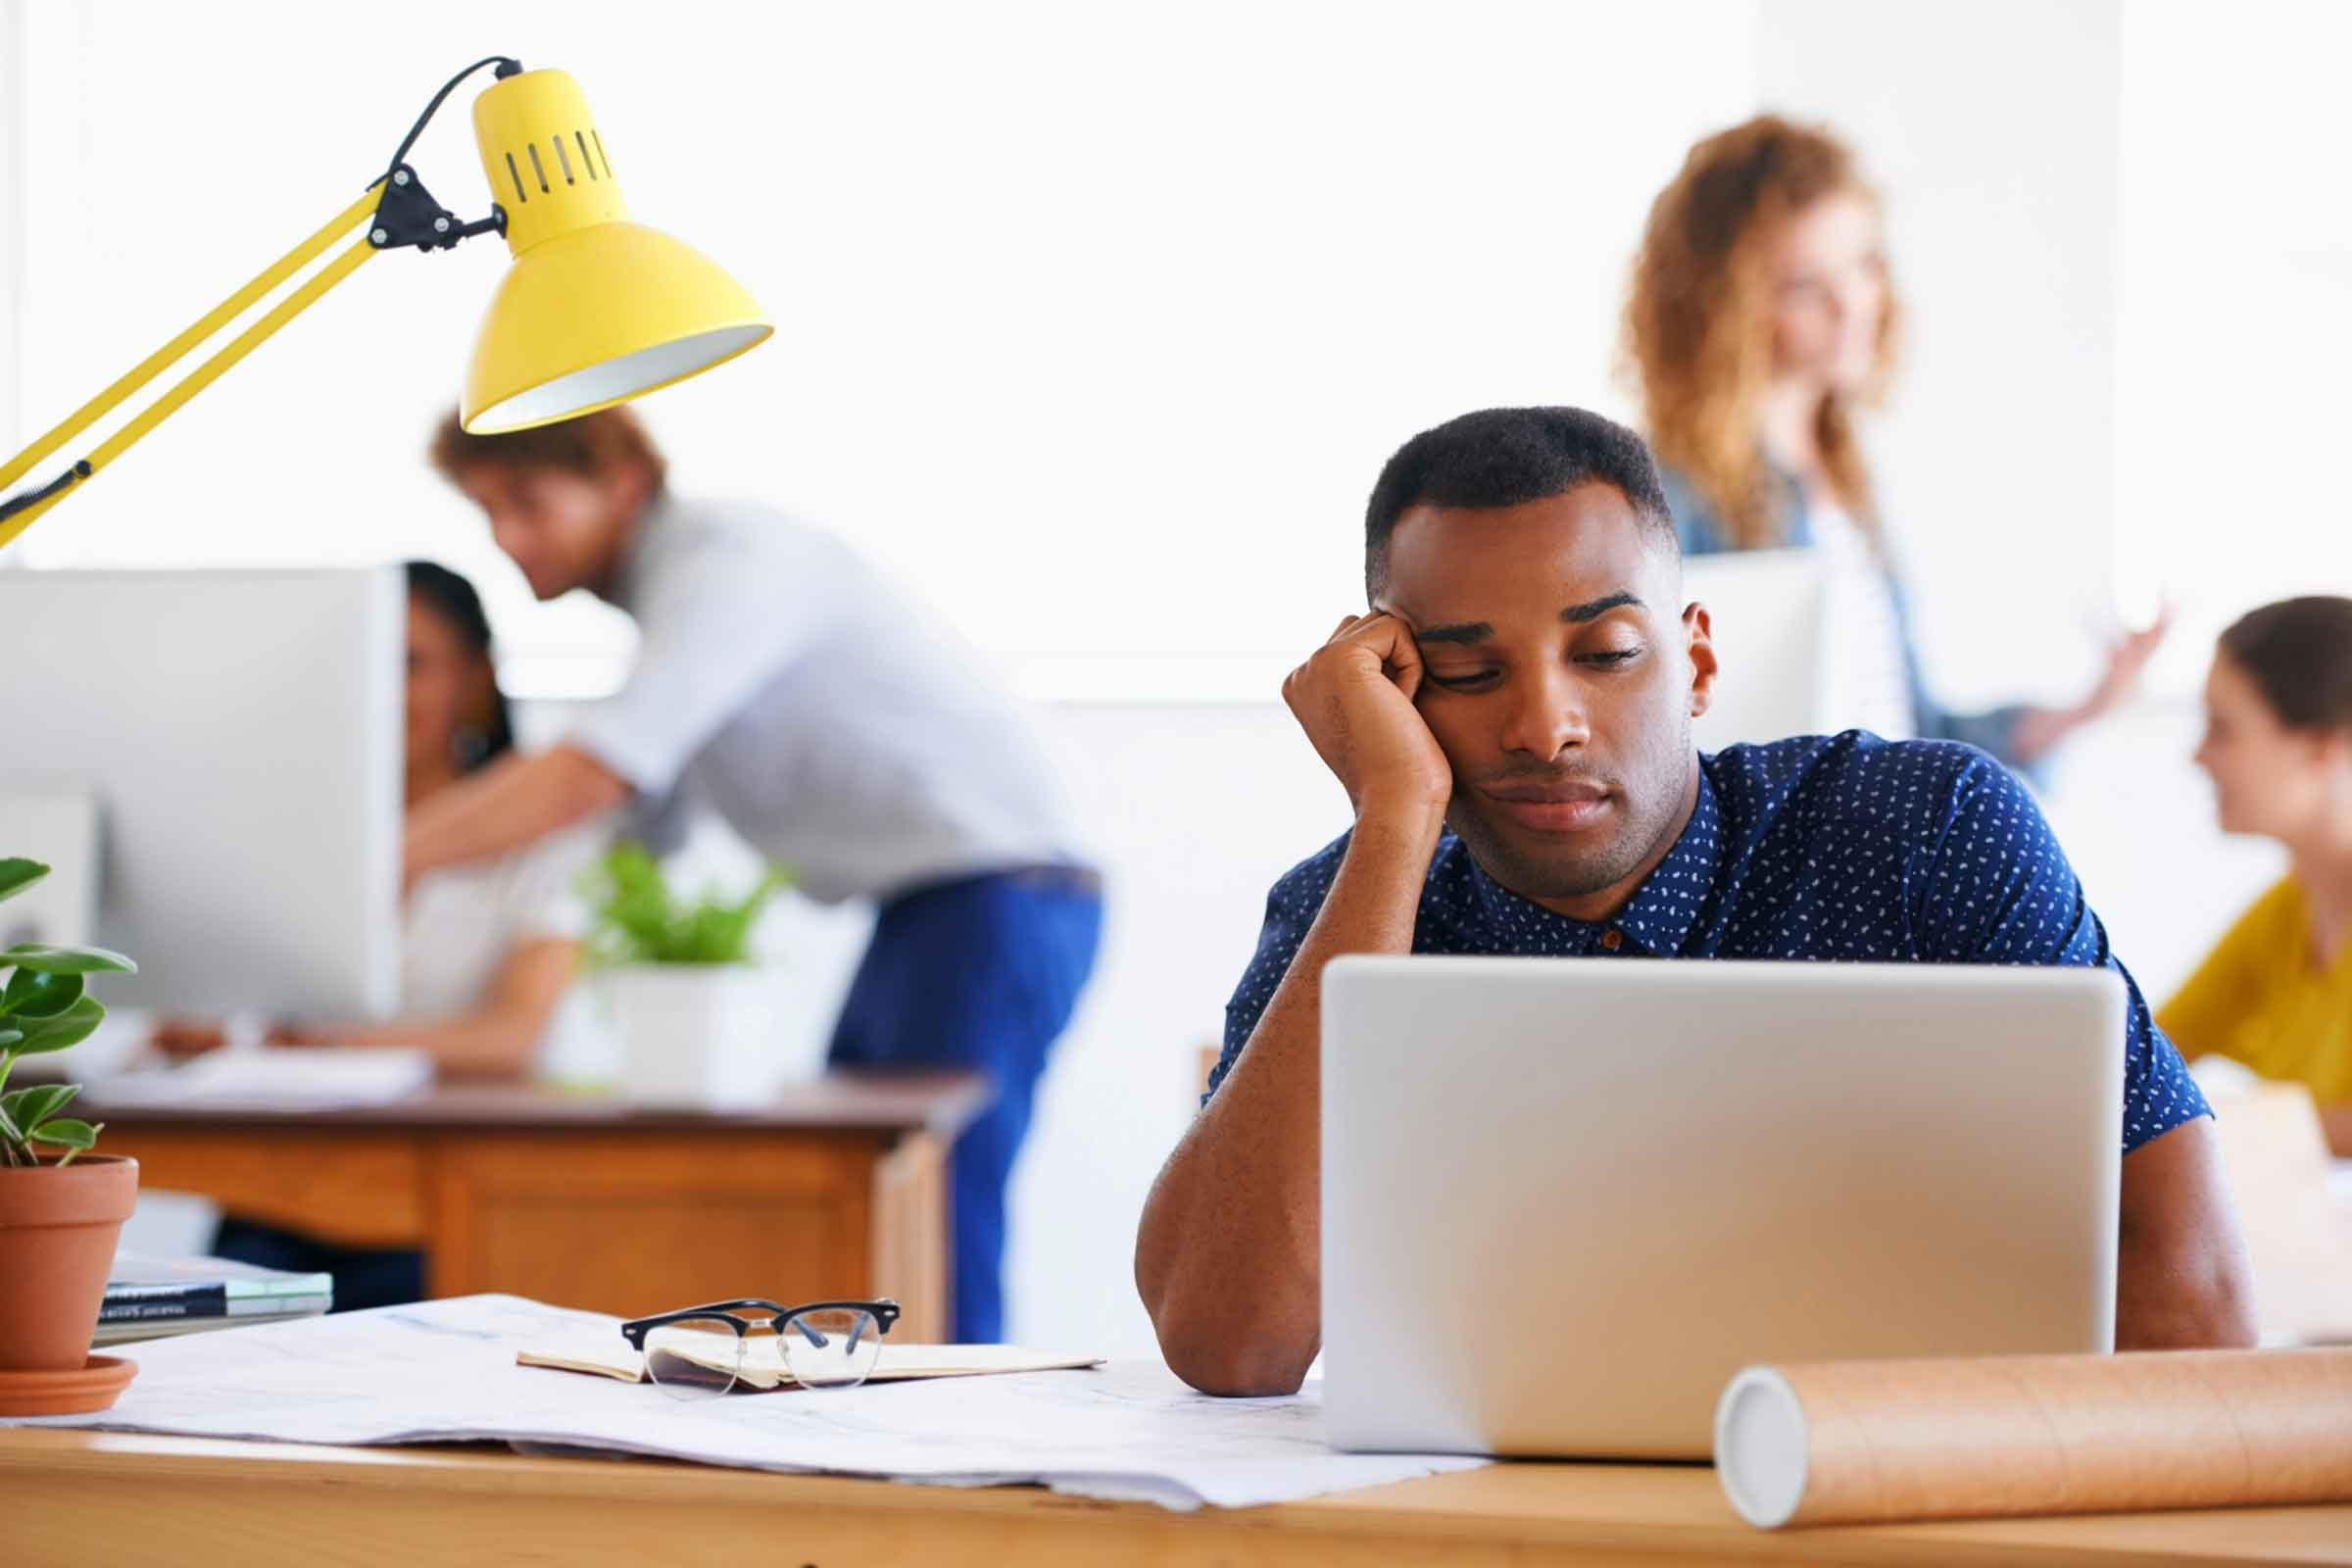 work burnout 7 symptoms work is too stressful reader s digest you re completely exhausted